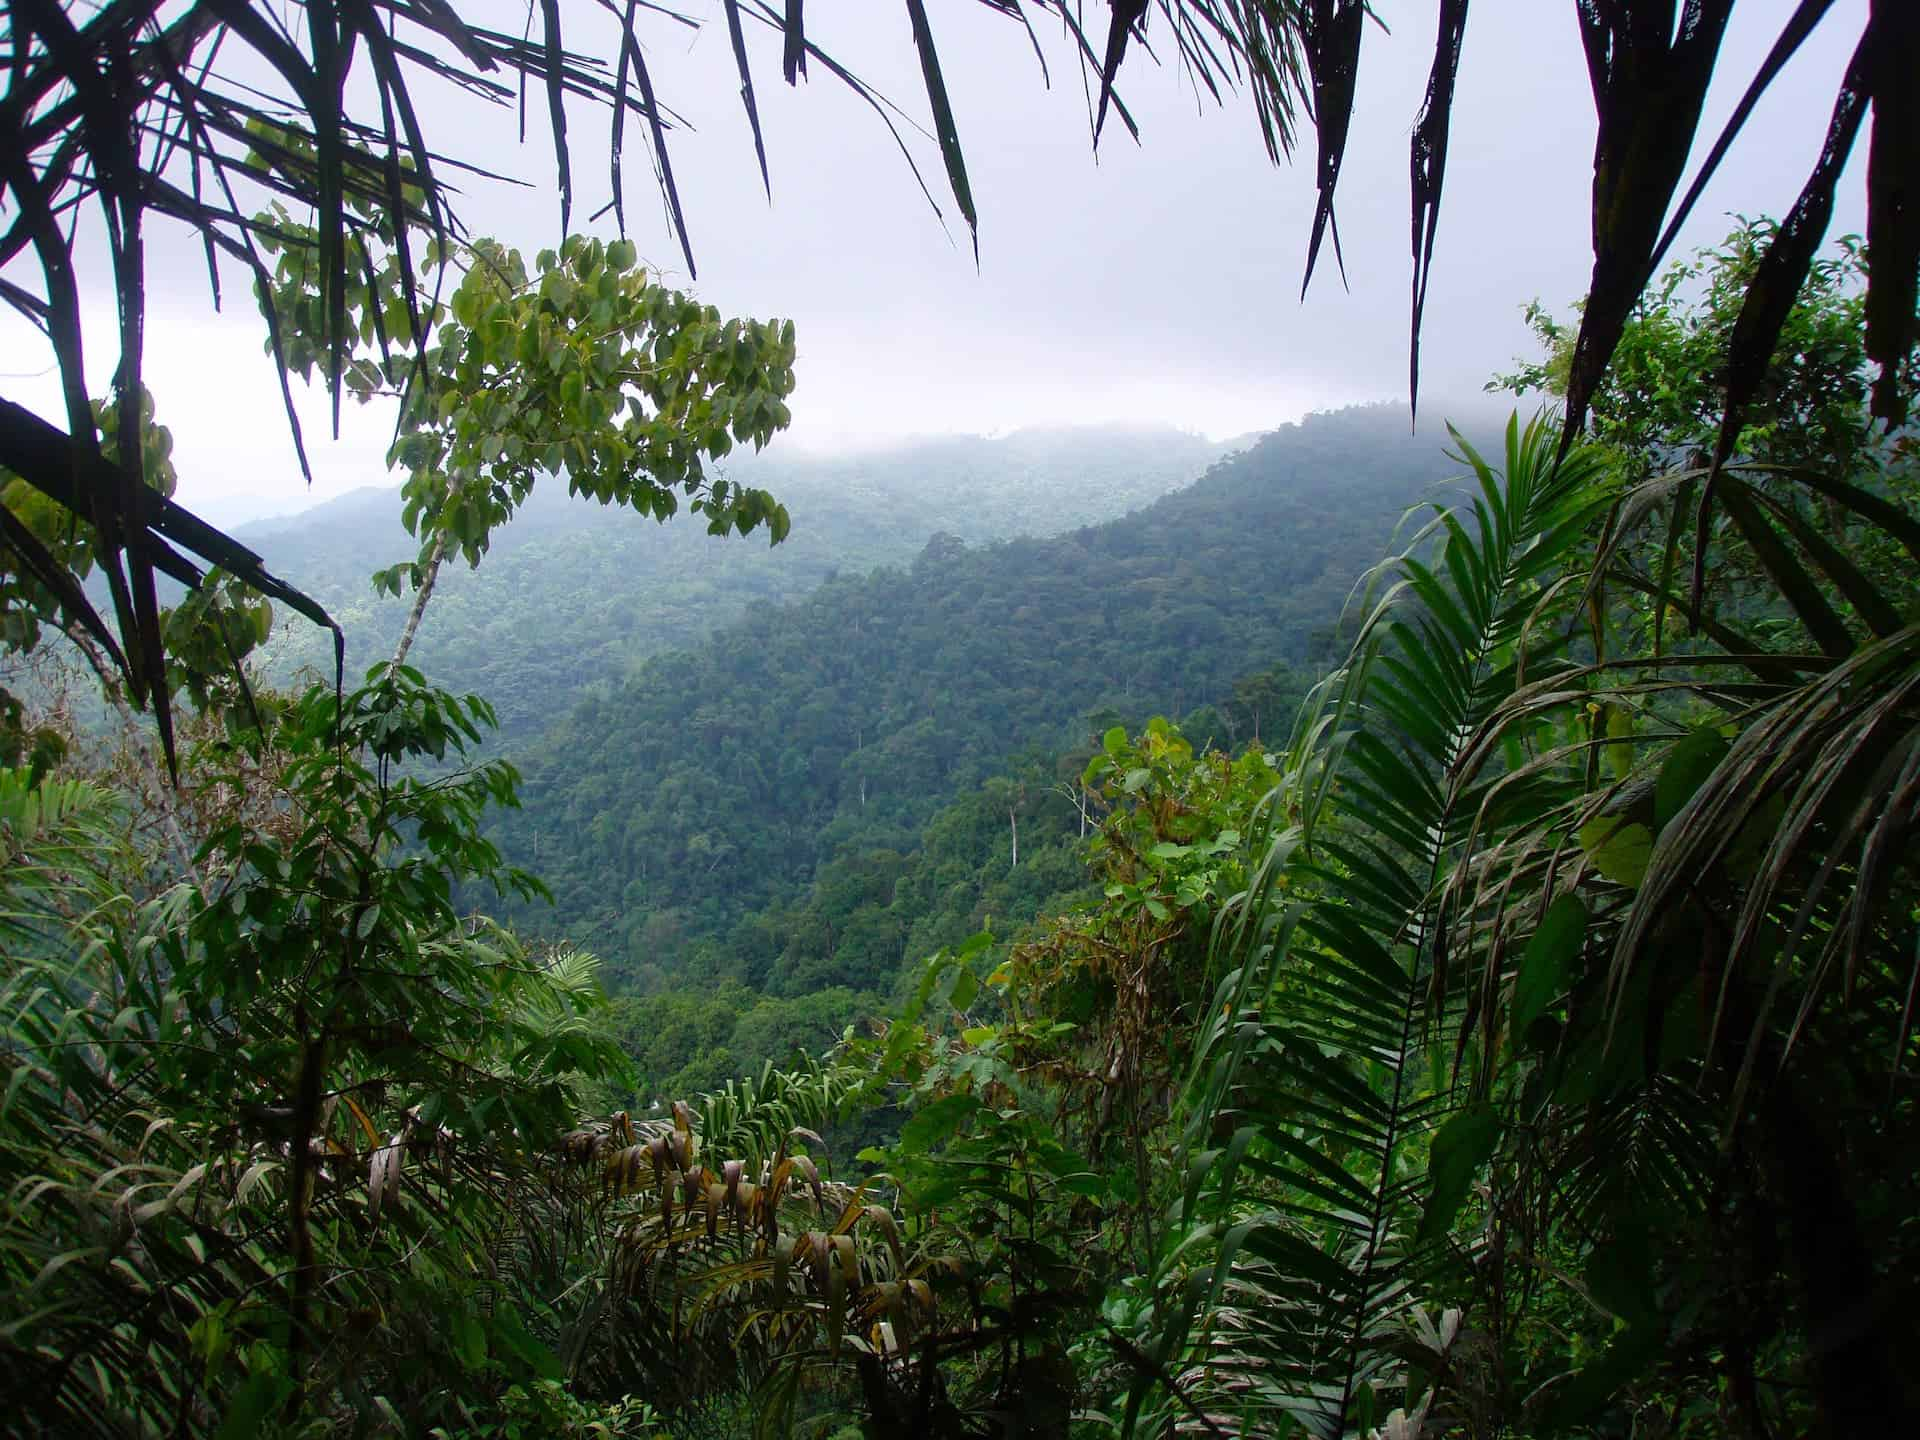 The Most Endangered Rainforest You've Never Heard Of